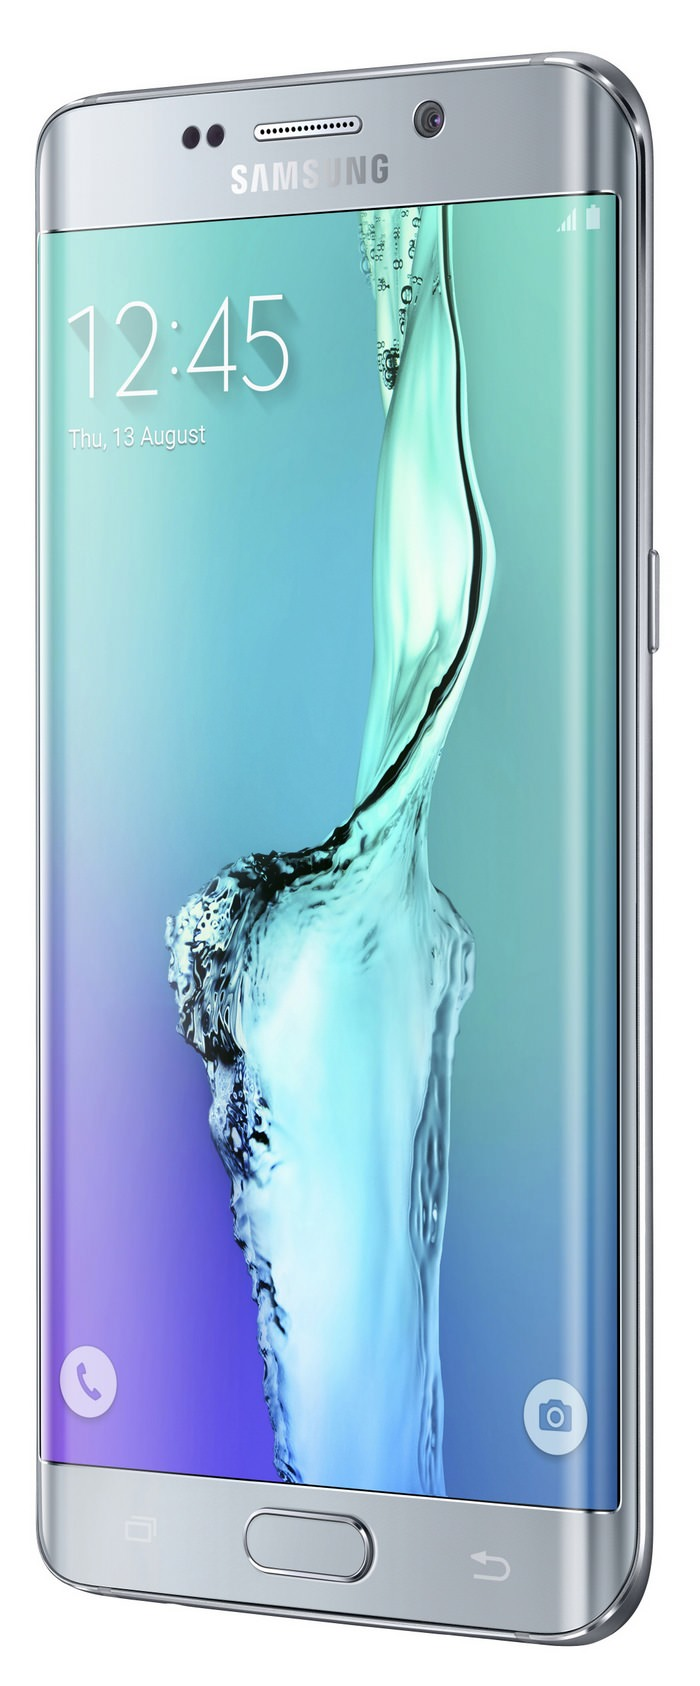 Samsung Galaxy S6 edge official images 006